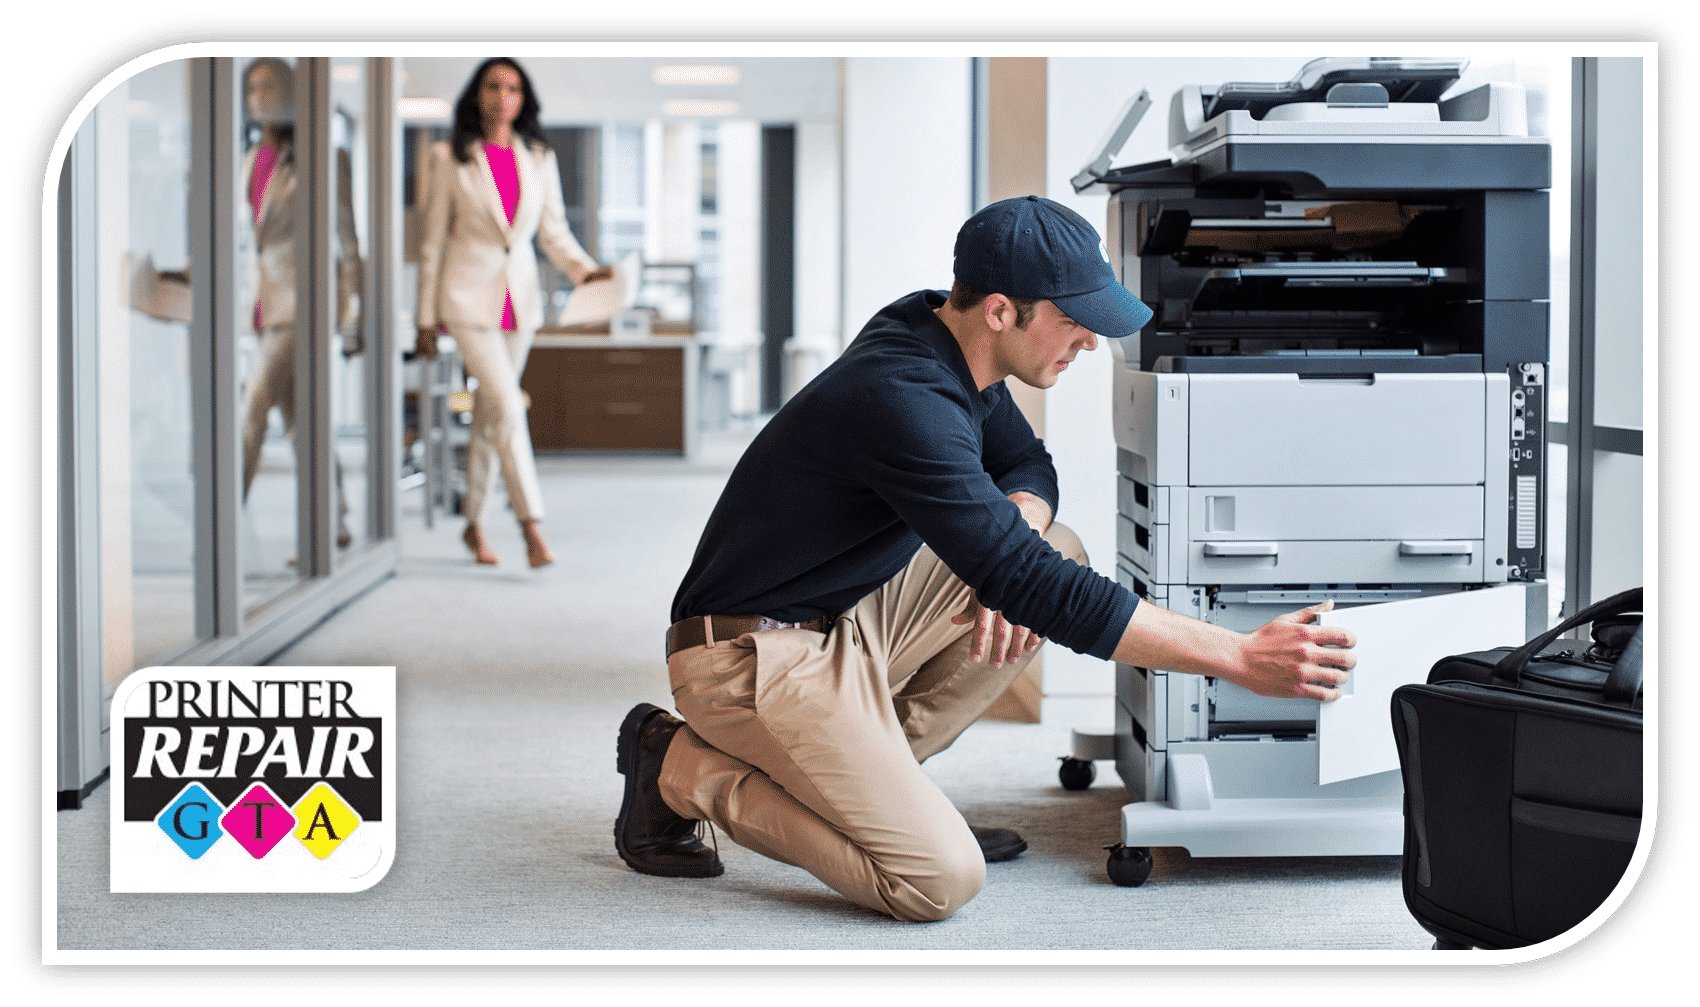 Printer Service Technician